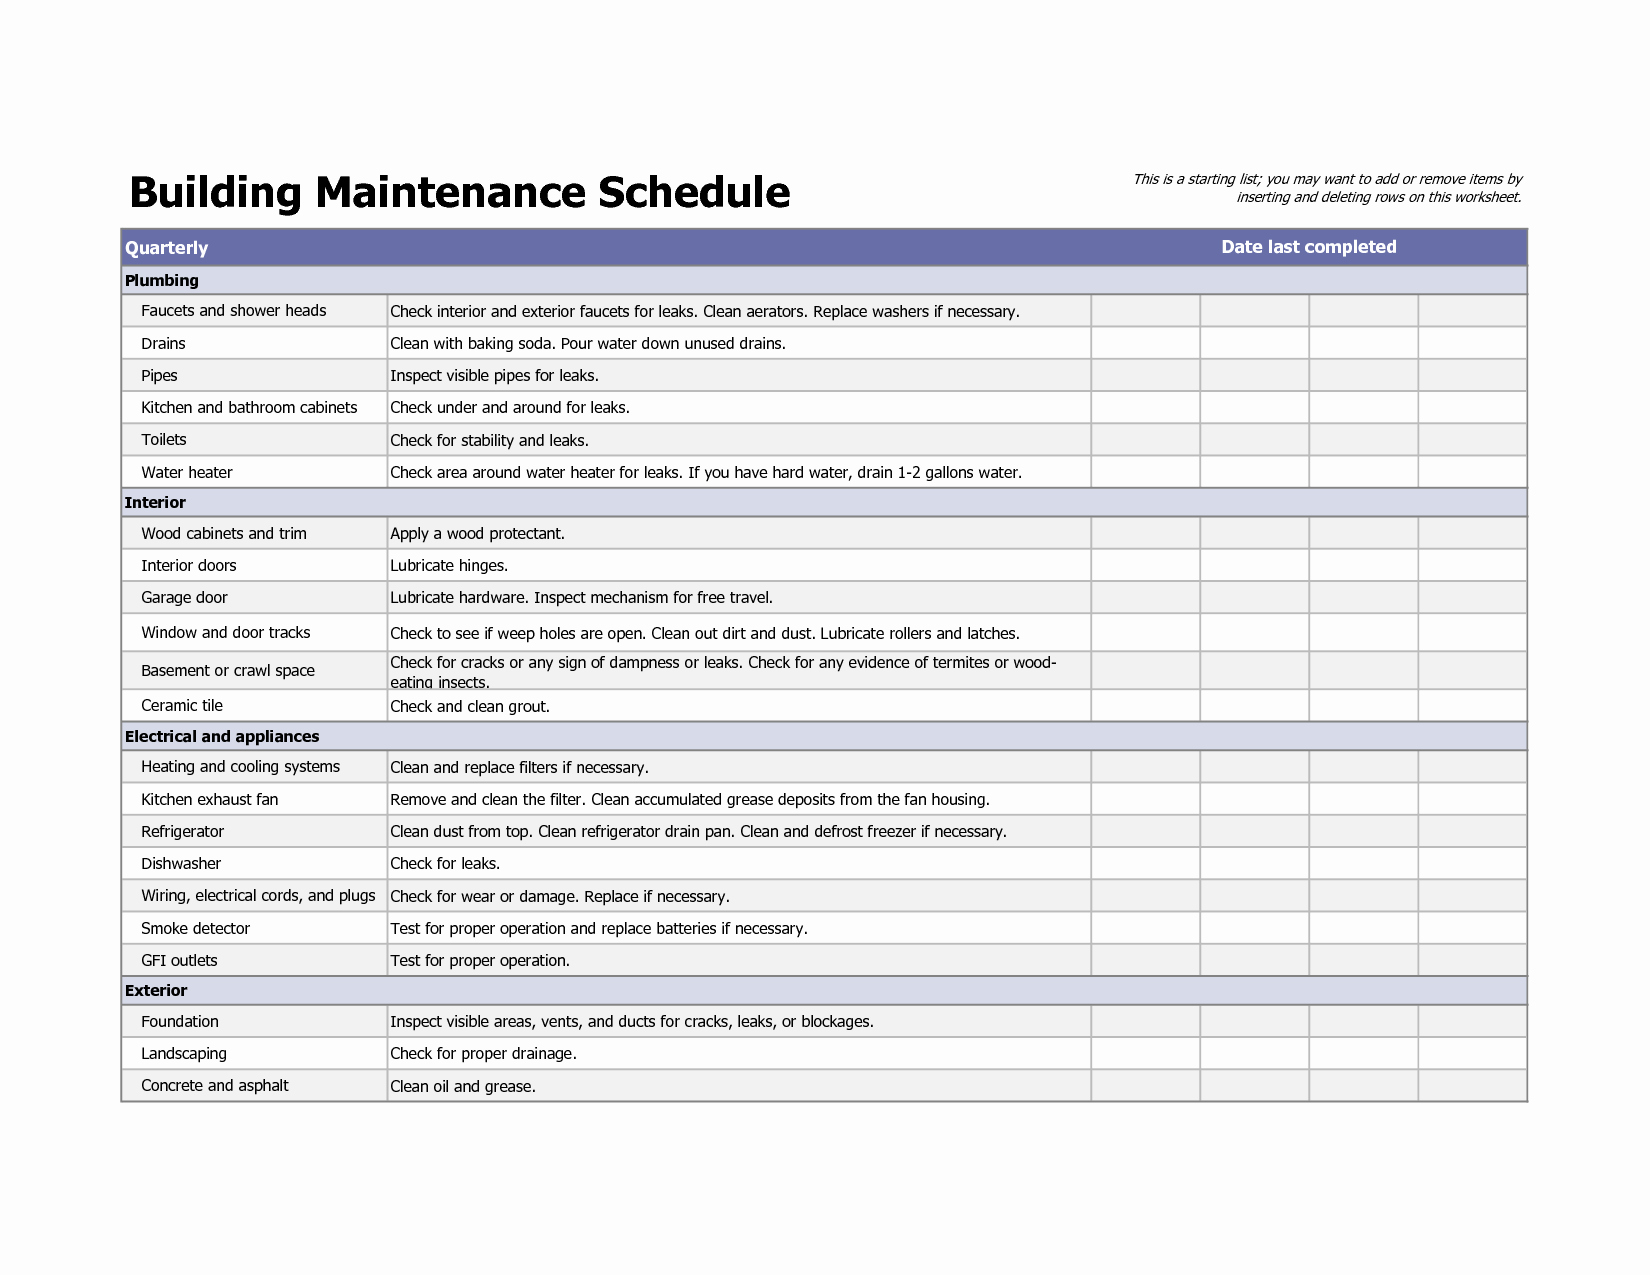 Preventive Maintenance Excel Template New Building Maintenance Schedule Excel Template Home Maintenance